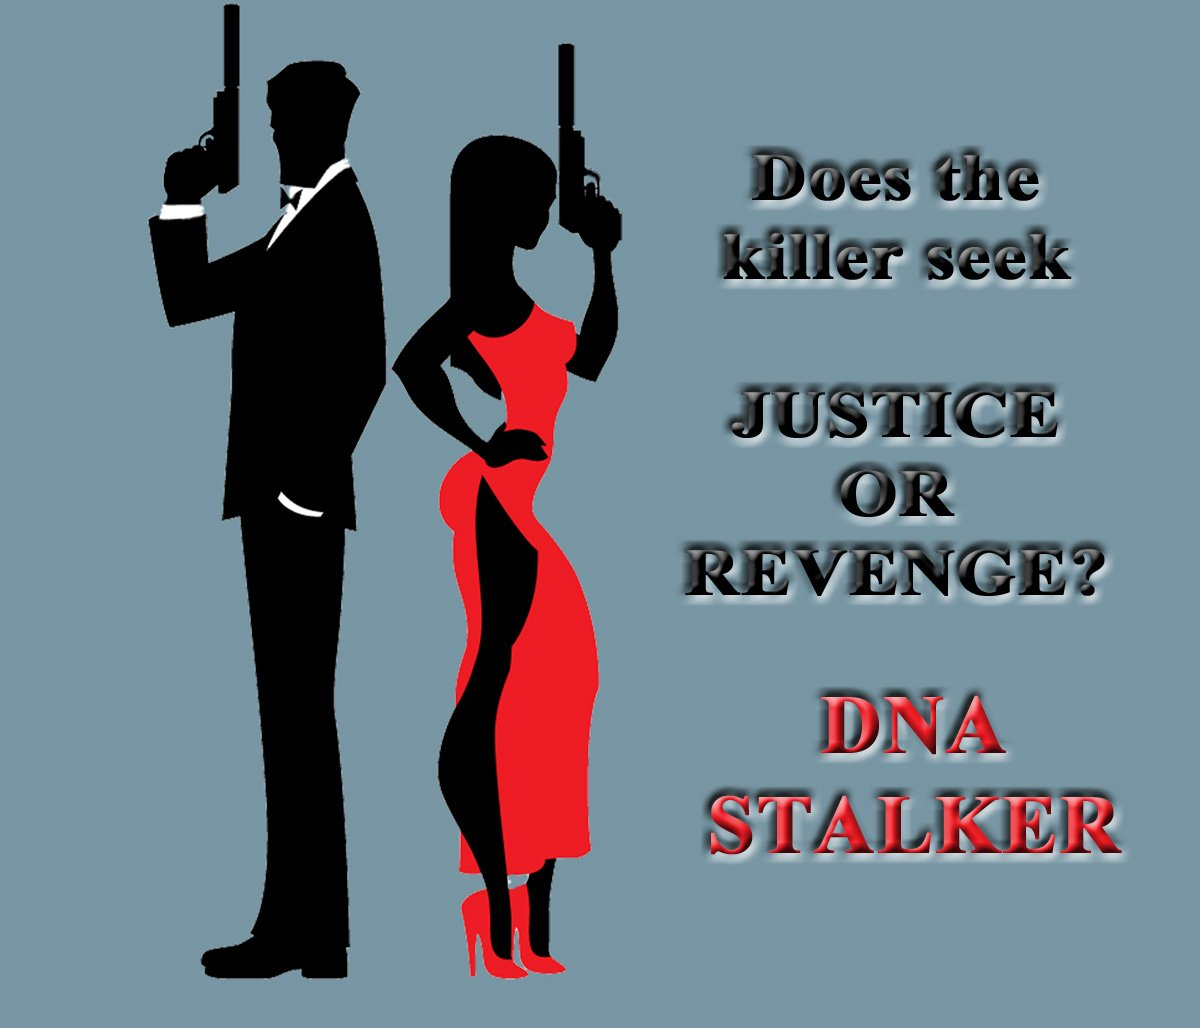 The Stalker's hunt started in 1978 after the Jonestown Massacre. The #Stalker is determined and deadly! Now Jason and Natalia must protect six sets of identical twins onboard the ship.   DNA STALKER by Diane Rapp: http://myBook.to/DNA-Stalker    #ArtKNBpic.twitter.com/XpAUWex6uf